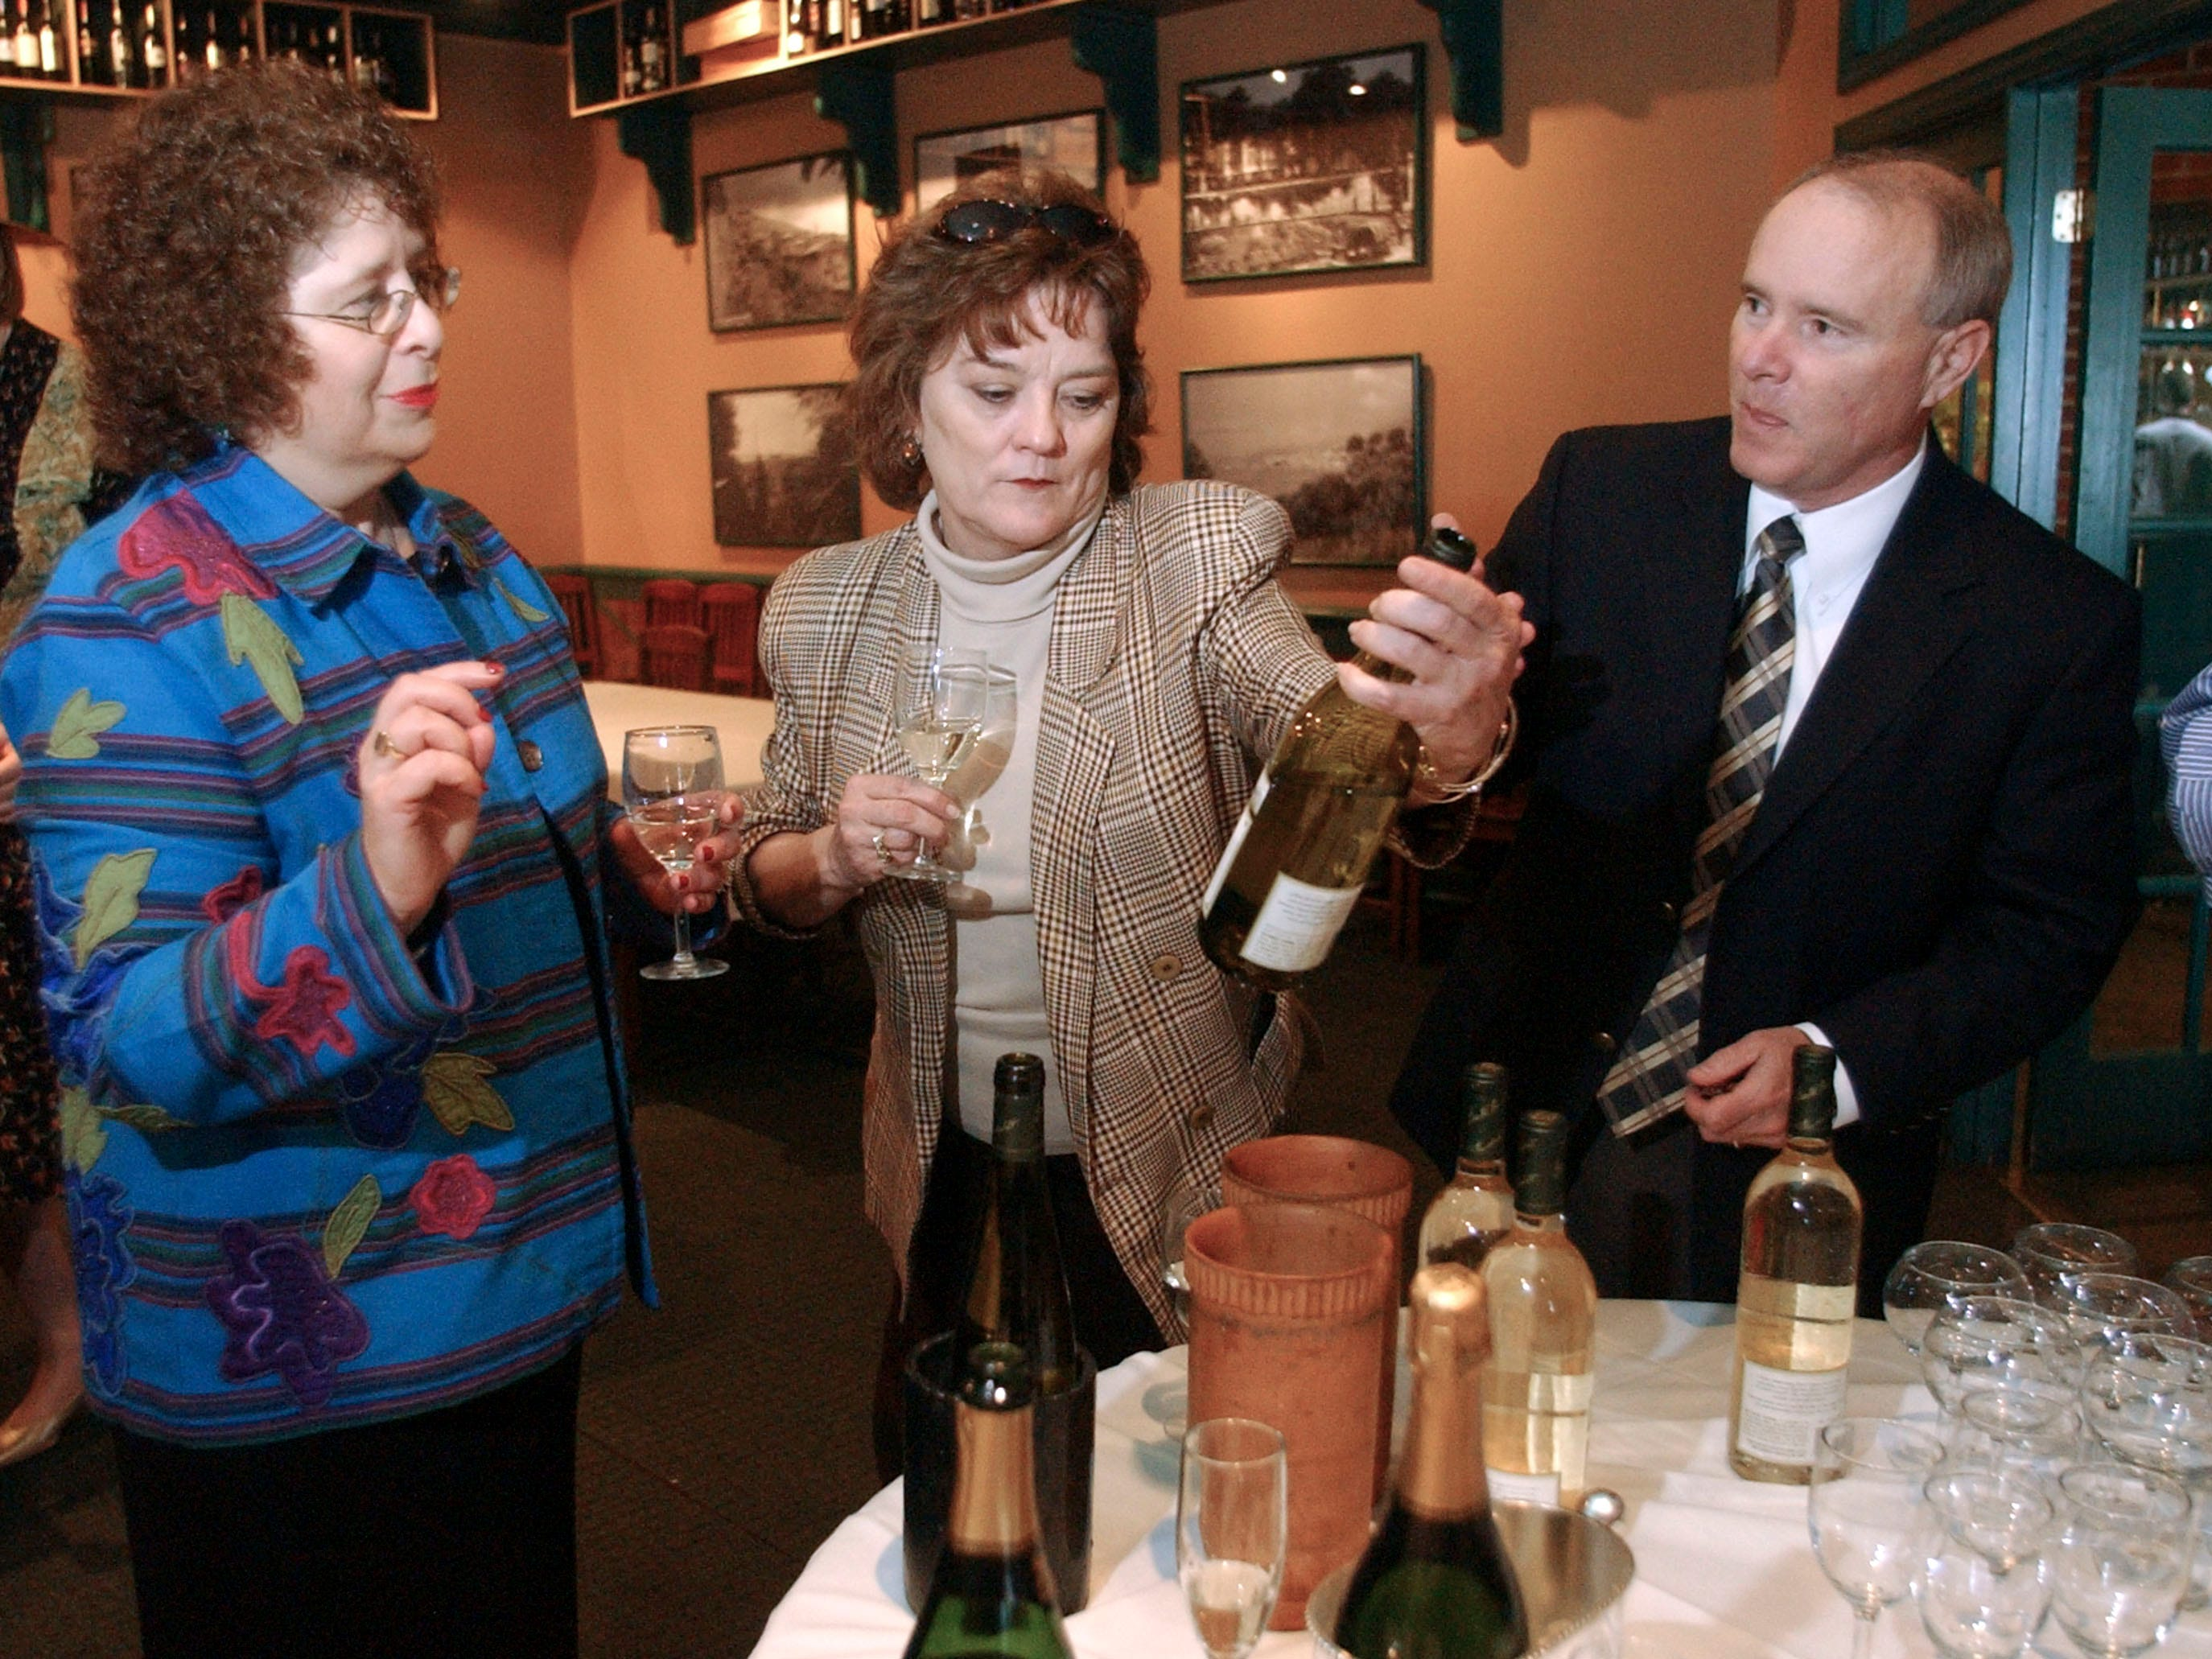 From left, Millie Hetrick, Bettye Sisco, and Jim Varnado  talks about the wine produced and bottled at Biltmore Estate Winery during a tasting at Italian Market & Grill in 2004.